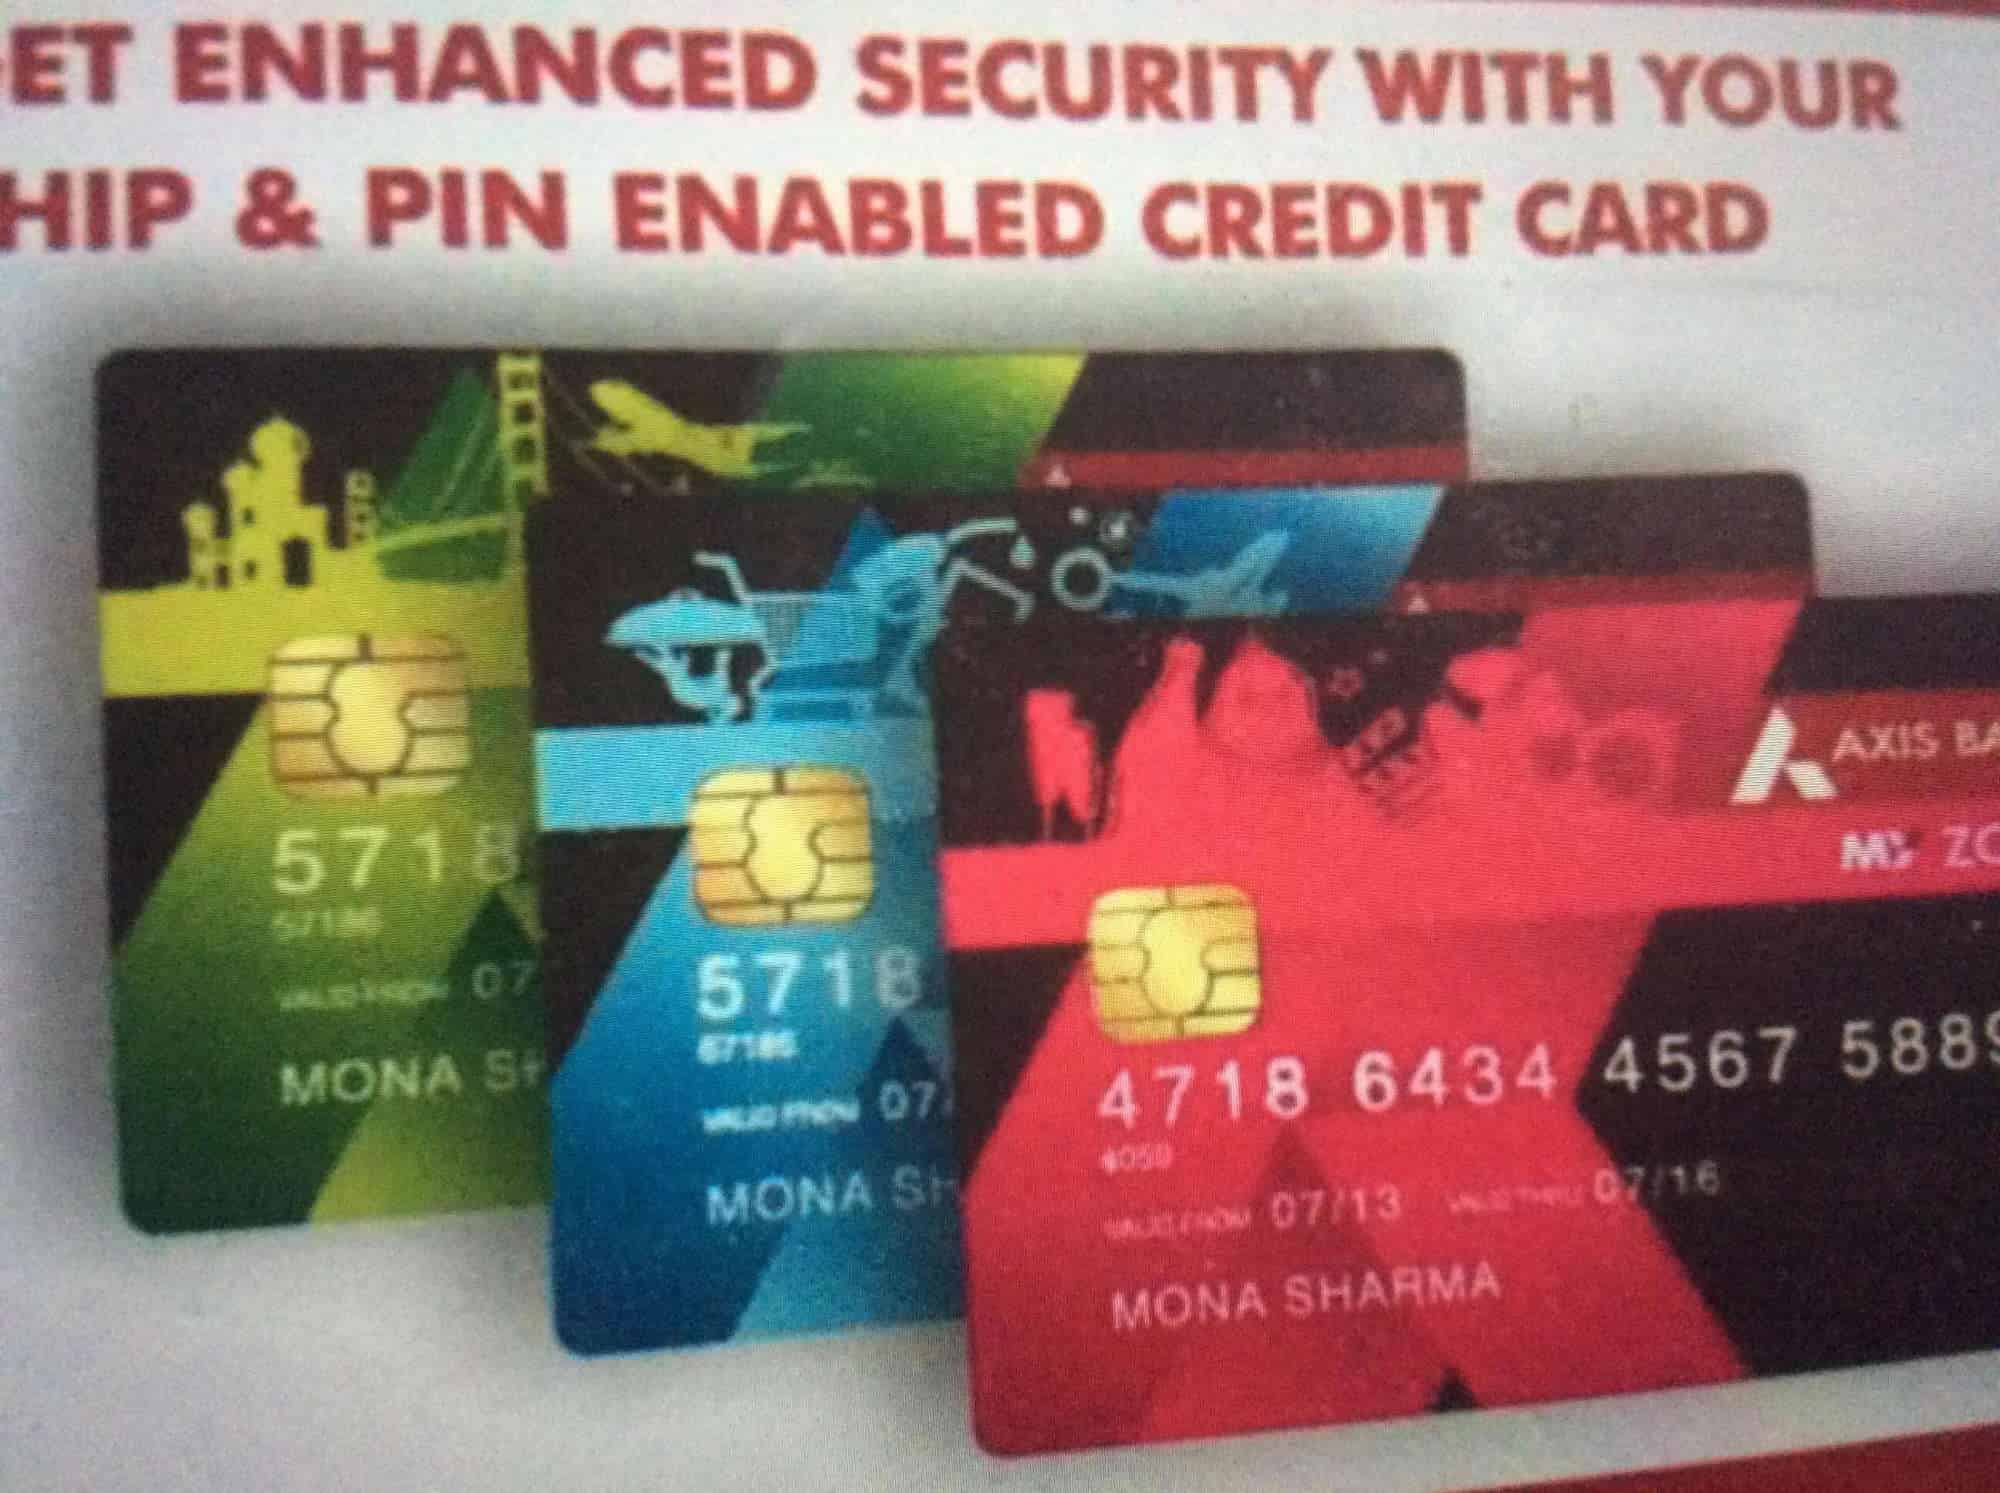 Axis bank credit card dondaparthy credit card agents in axis bank credit card dondaparthy credit card agents in visakhapatnam justdial magicingreecefo Images